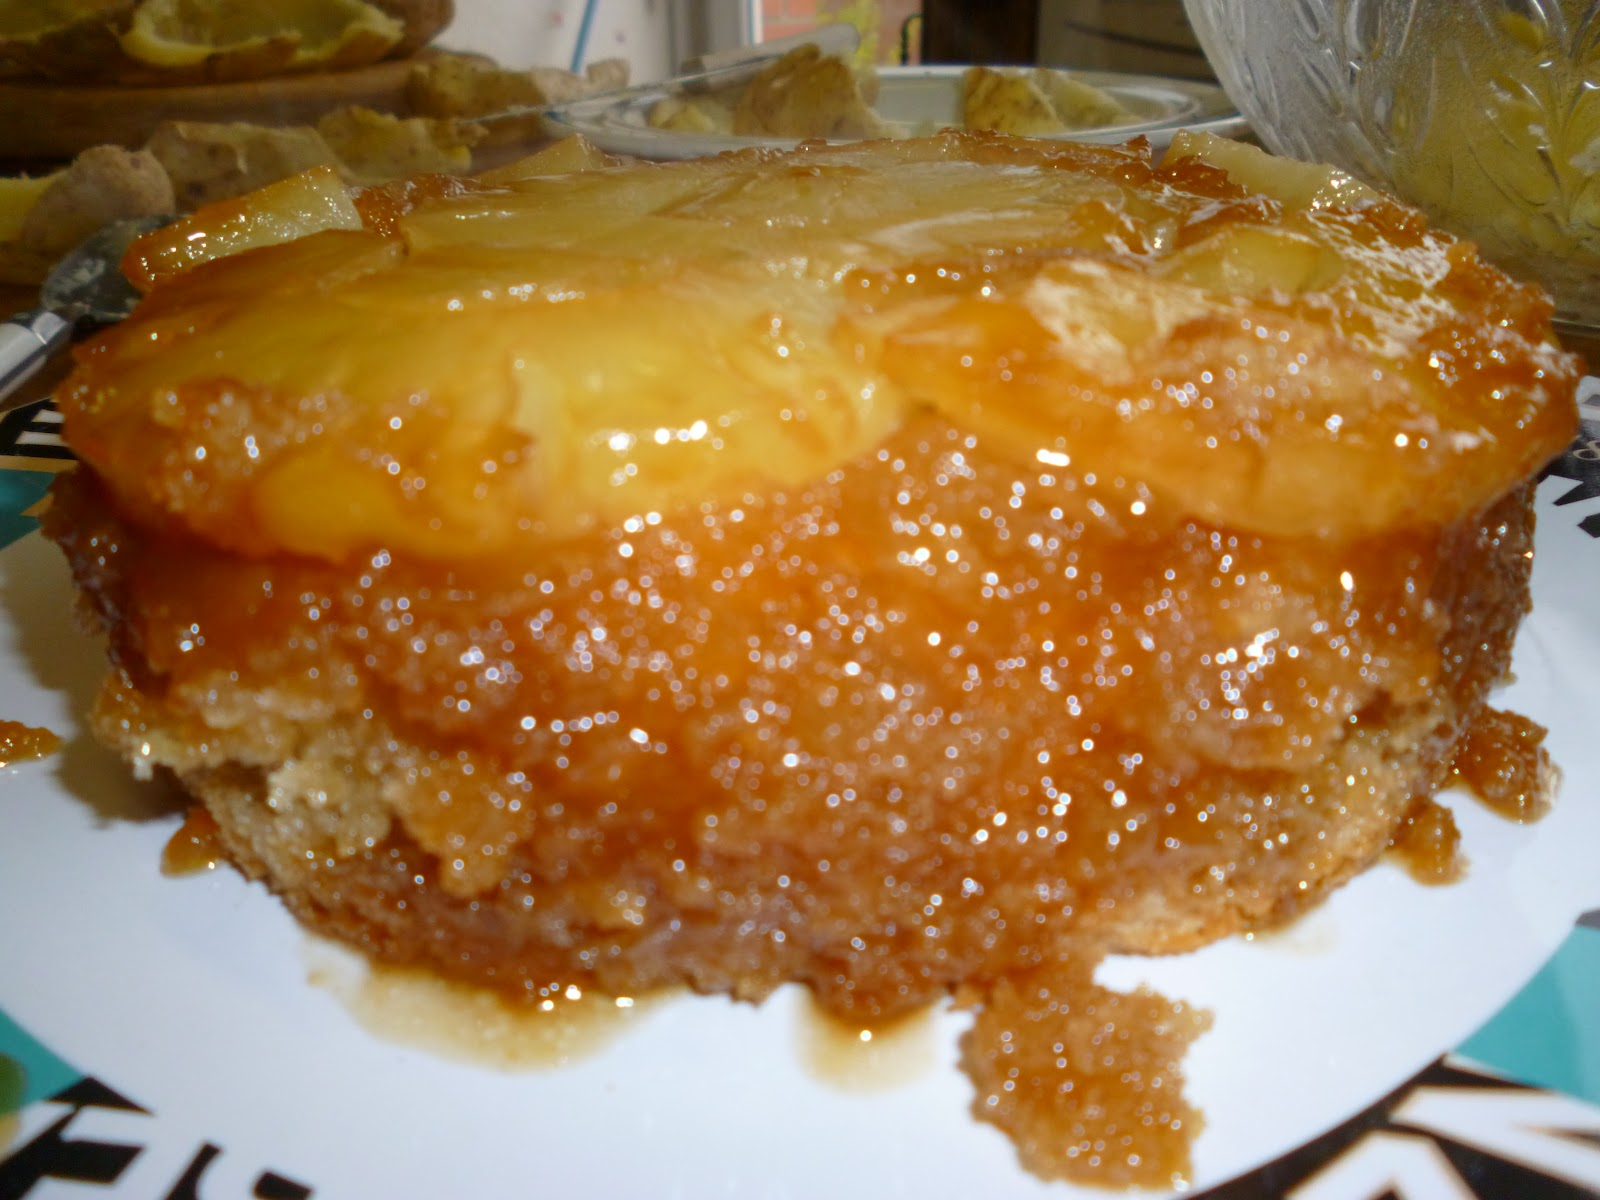 Old Fashioned Pineapple Upside-Down Cake Recipe 52